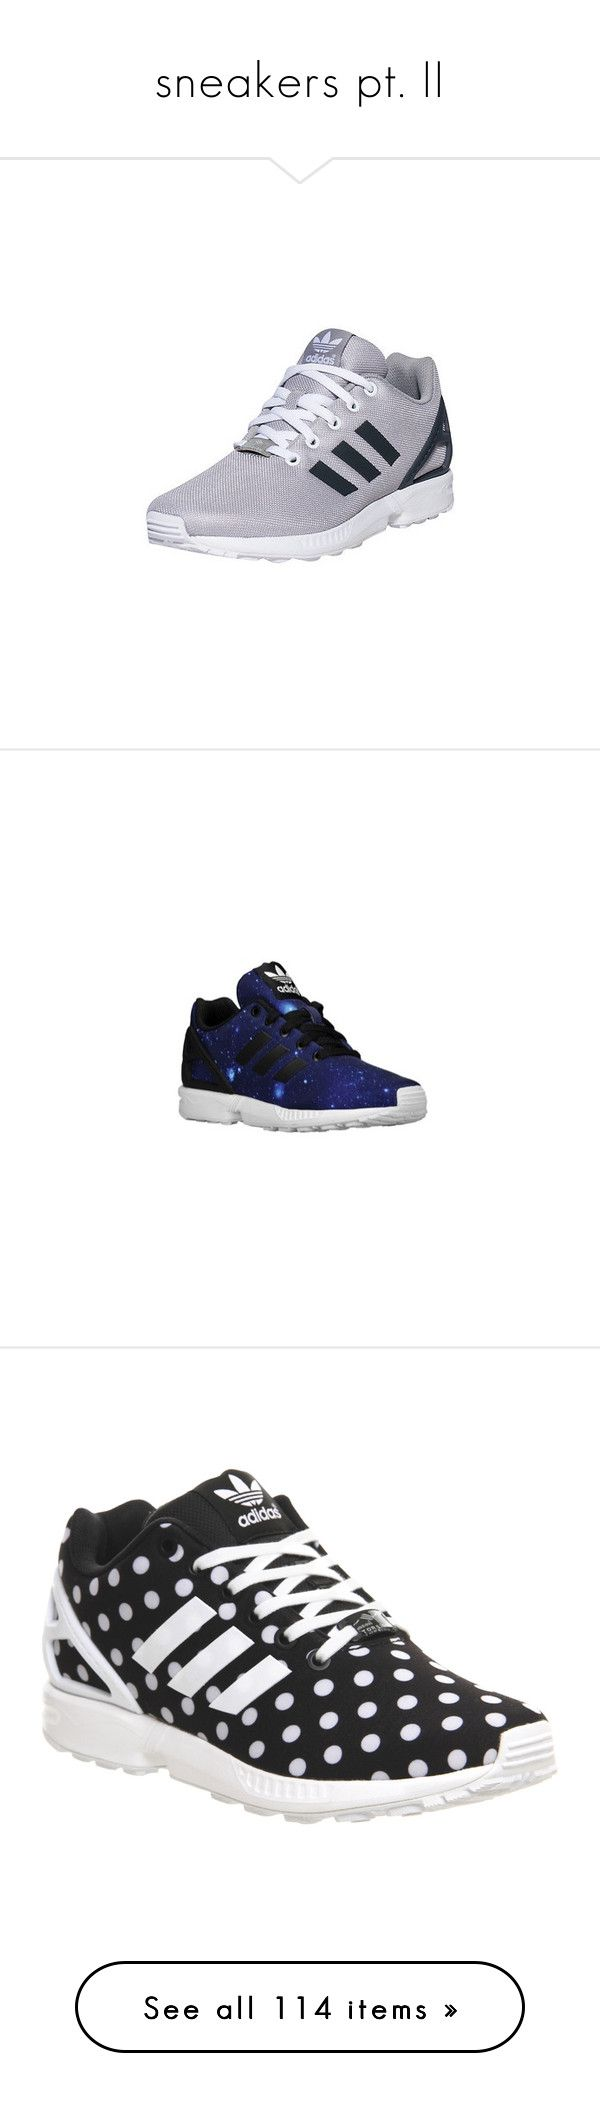 """""""sneakers pt. II"""" by cathxwut ❤ liked on Polyvore featuring shoes, sneakers, canvas sneakers, gray shoes, cushioned shoes, grey shoes, adidas sneakers, adidas, trainers and core black white polka dot"""